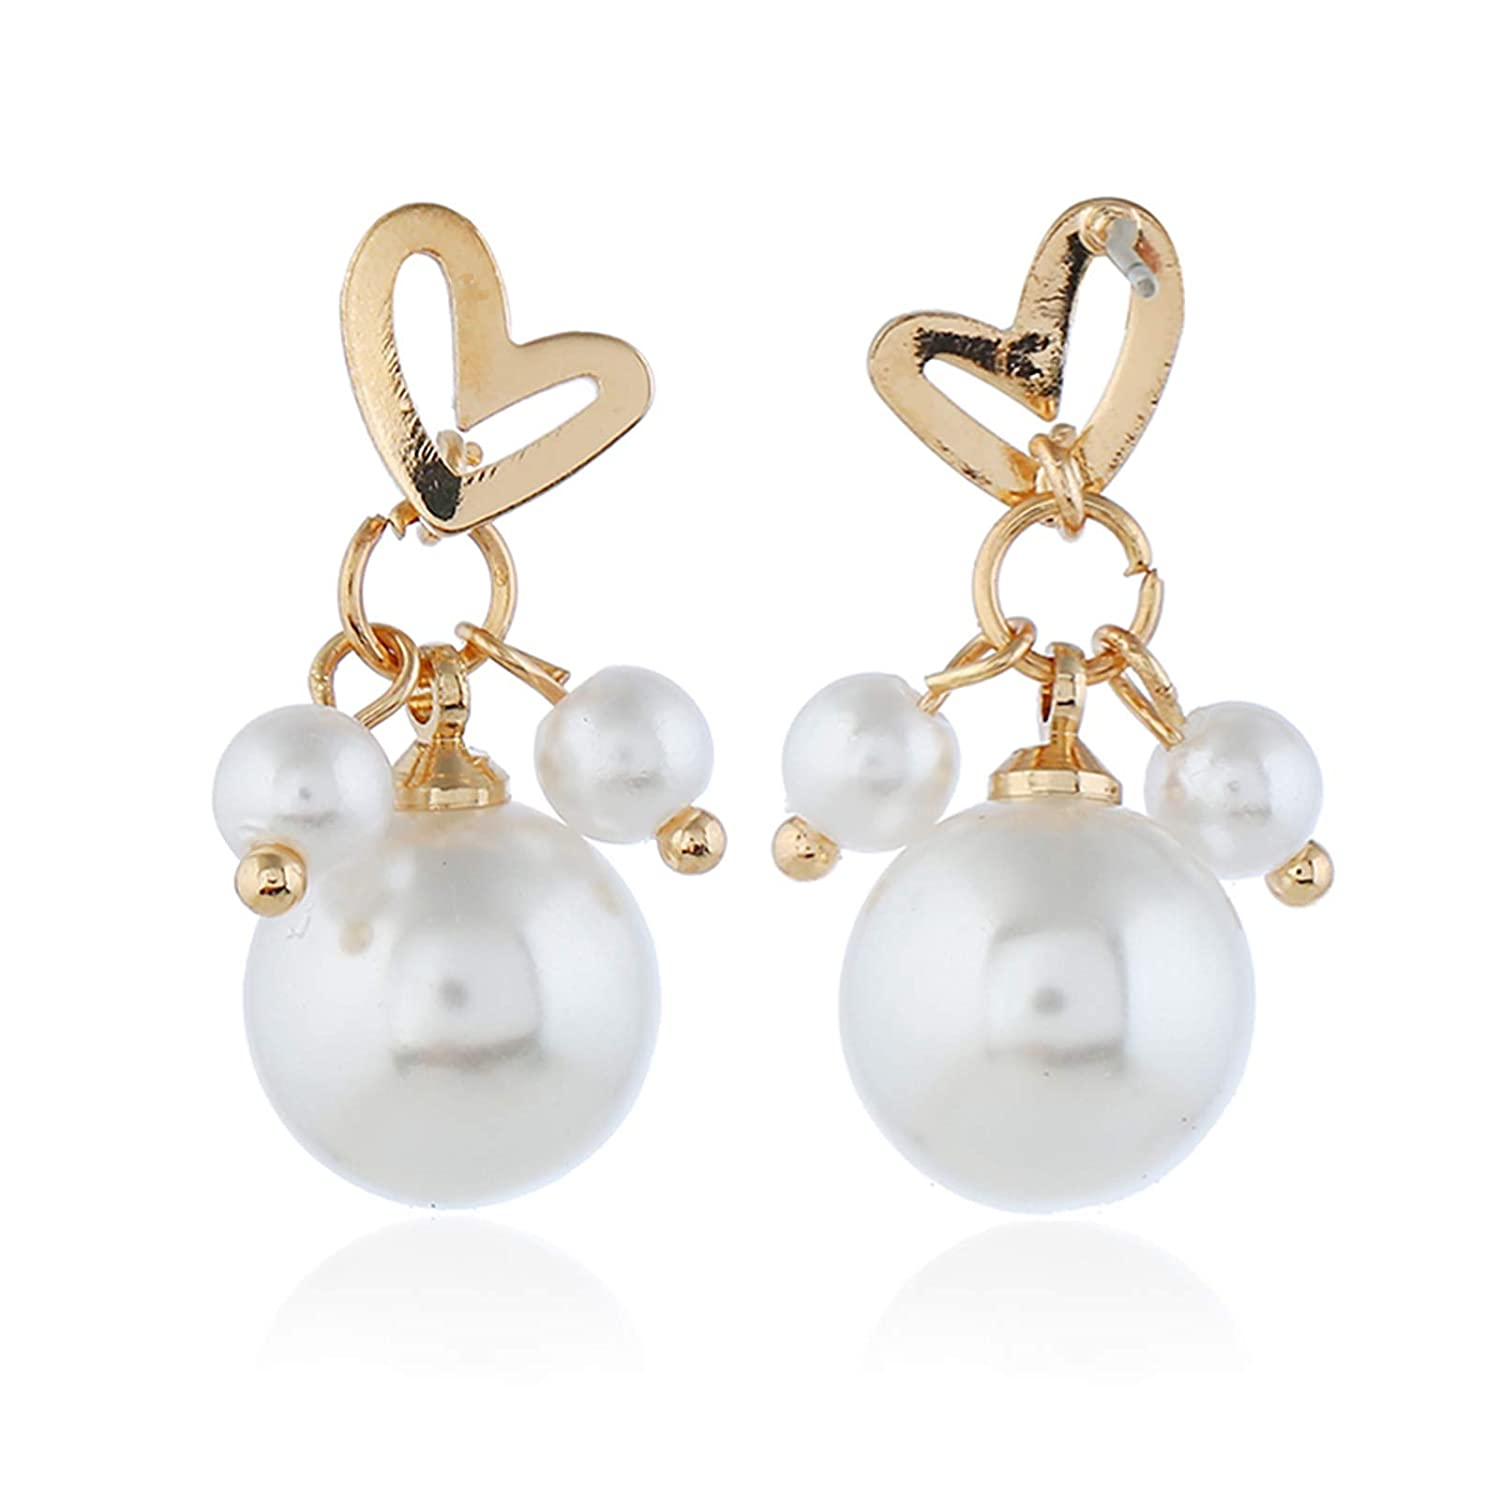 FoxLegend Womans Fashion pearl earrings with heart-shaped earrings short style earrings and thin Korean earrings for ladies